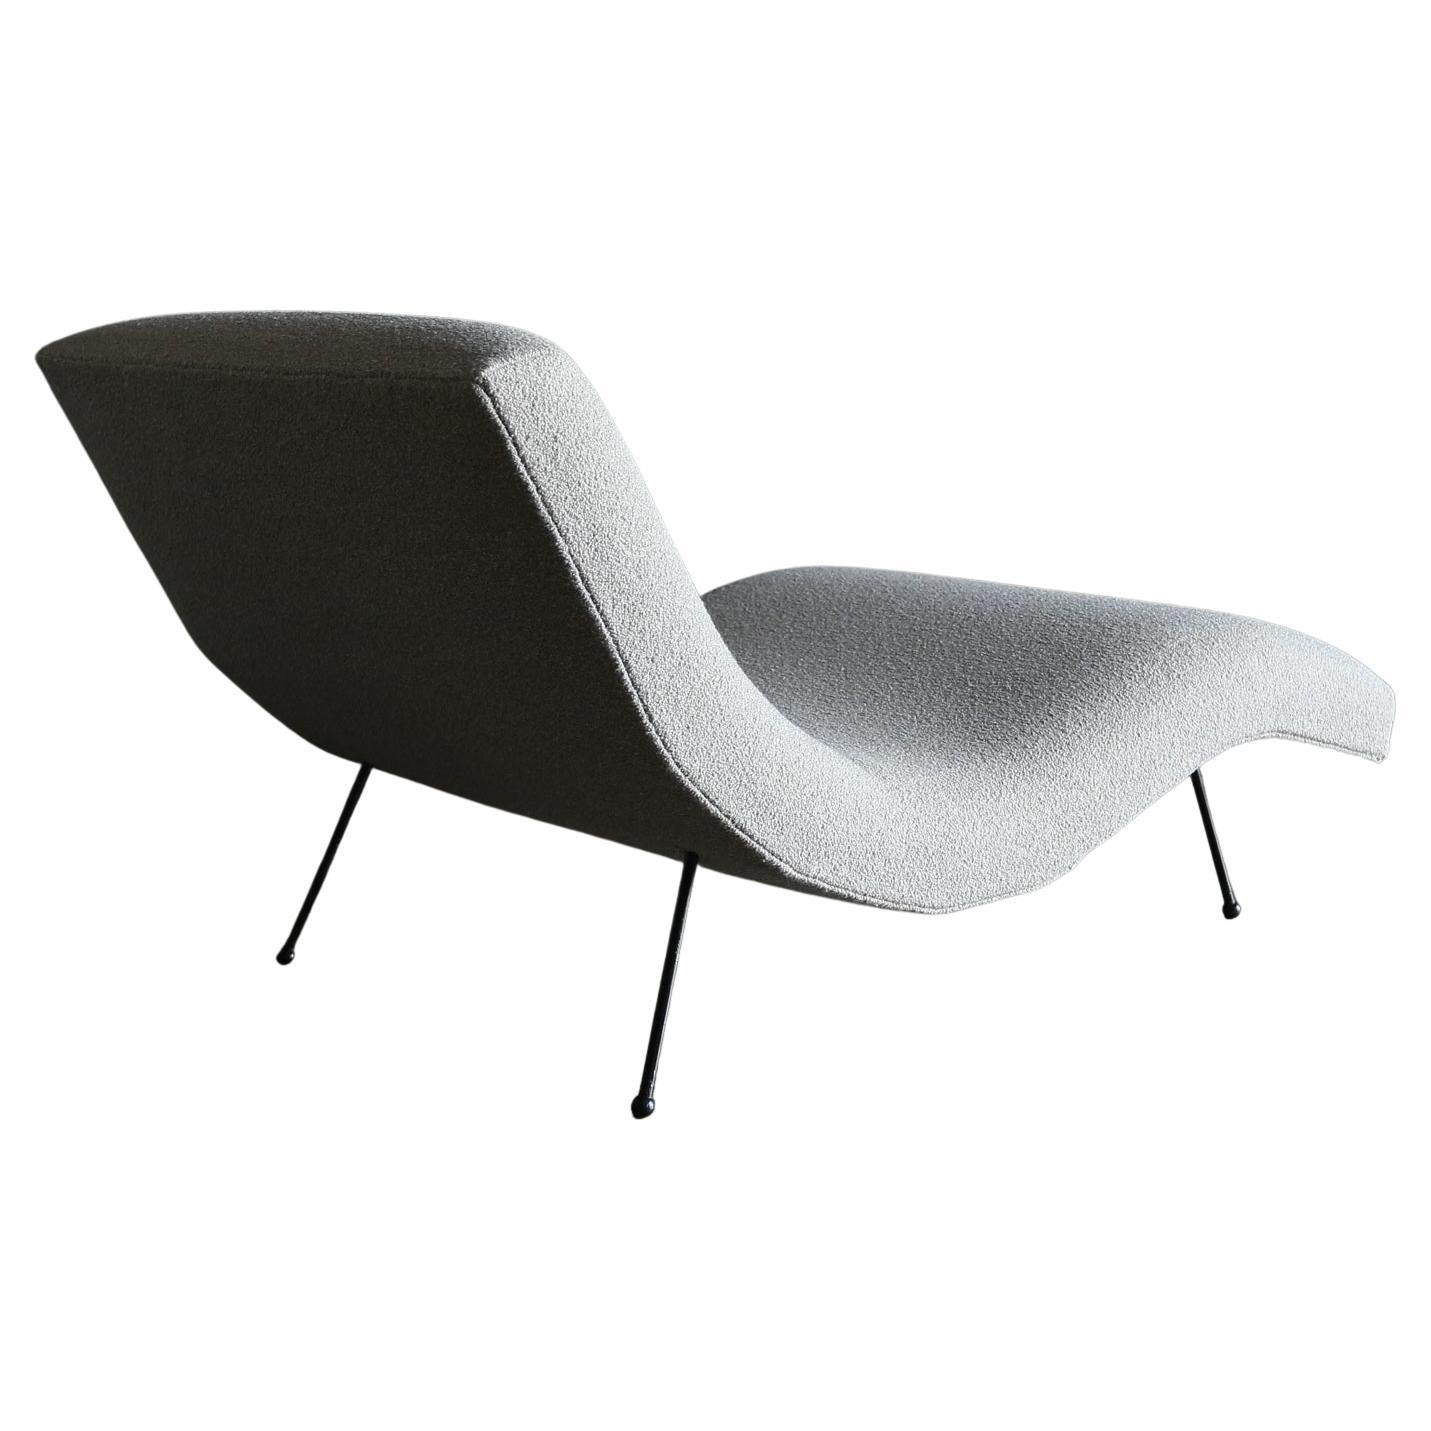 Adrian Pearsall Wave Chaise Lounge for Craft Associates, circa 1960